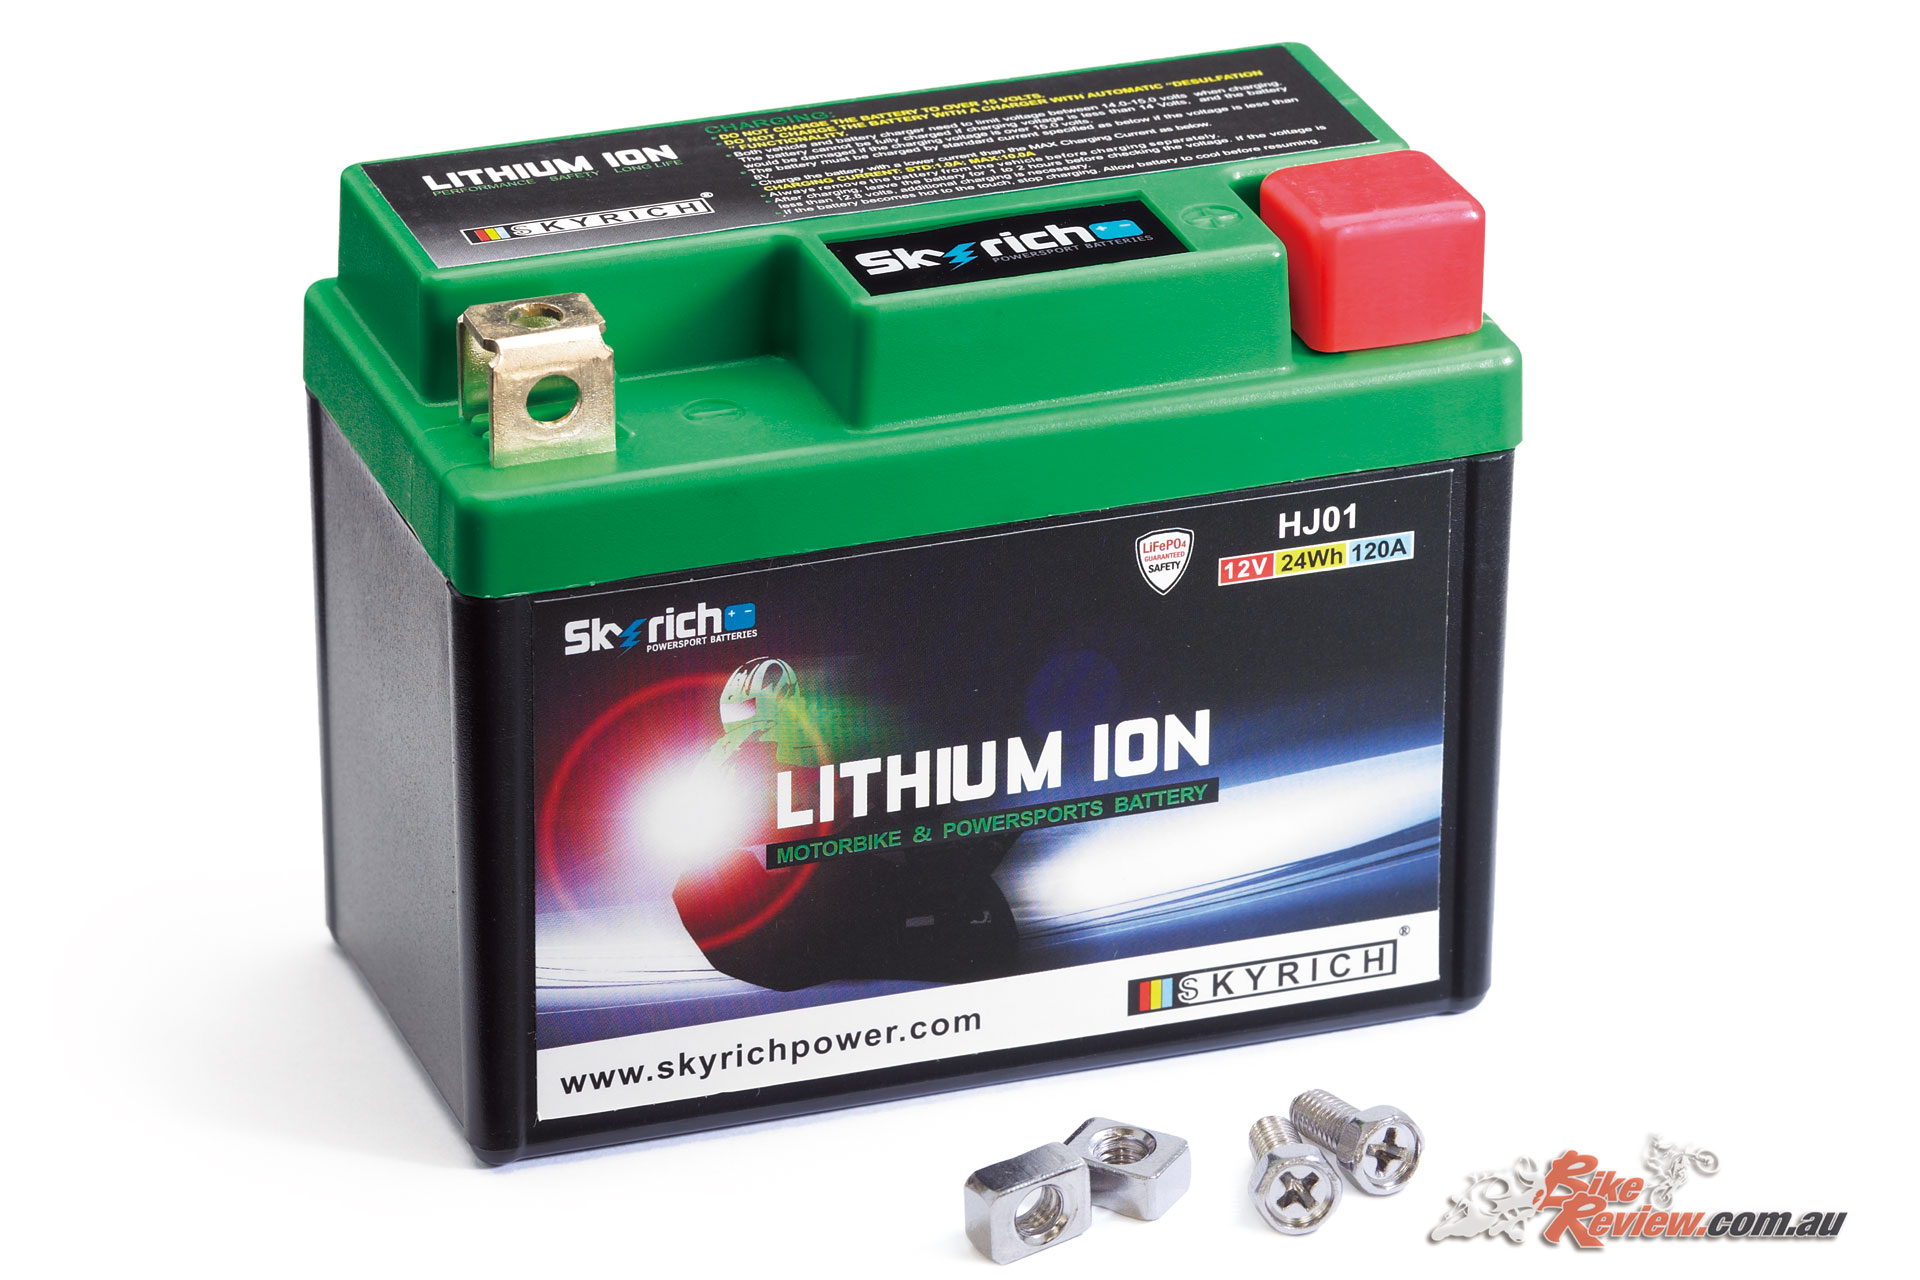 A Lithium Ion battery weighs only 500g